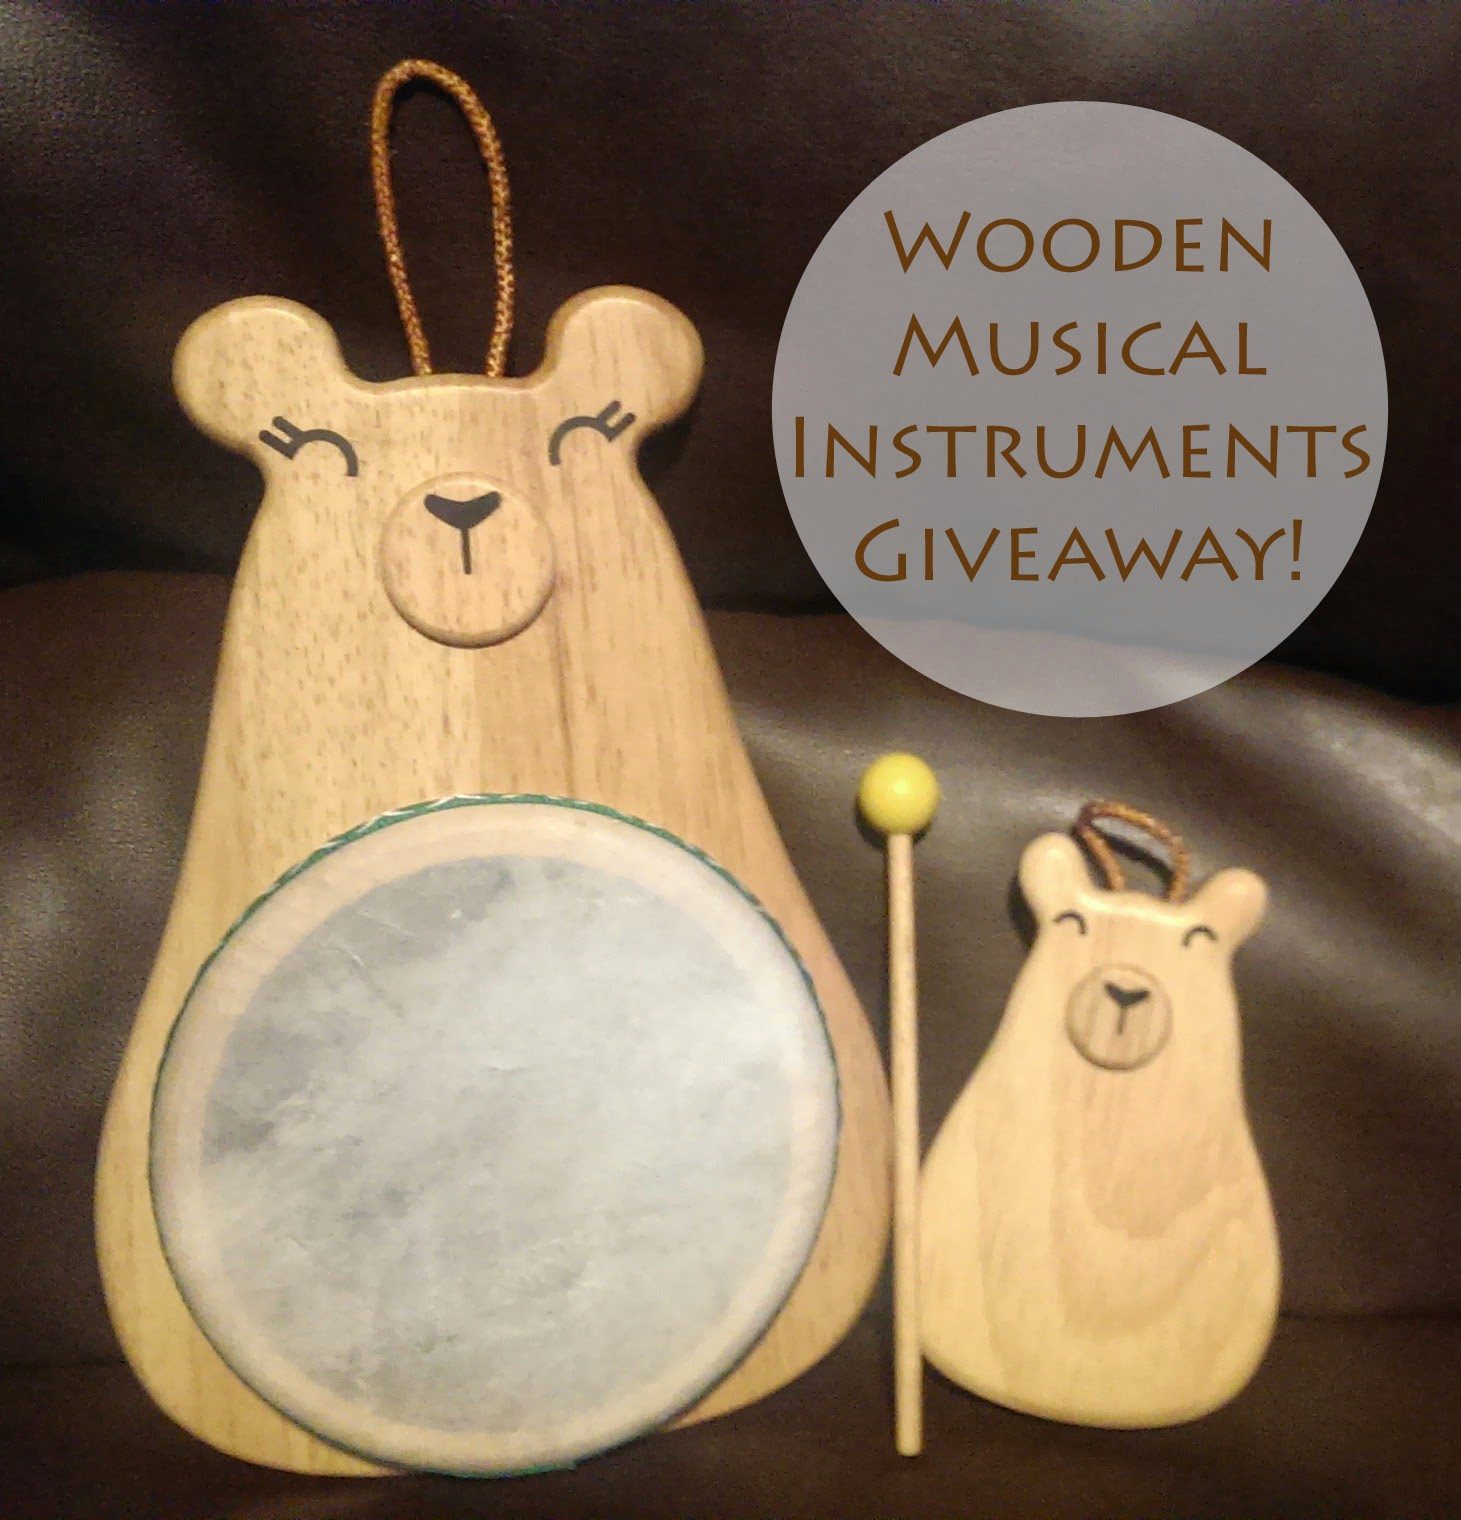 Green Tones Eco-Friendly Wooden Instruments Giveaway